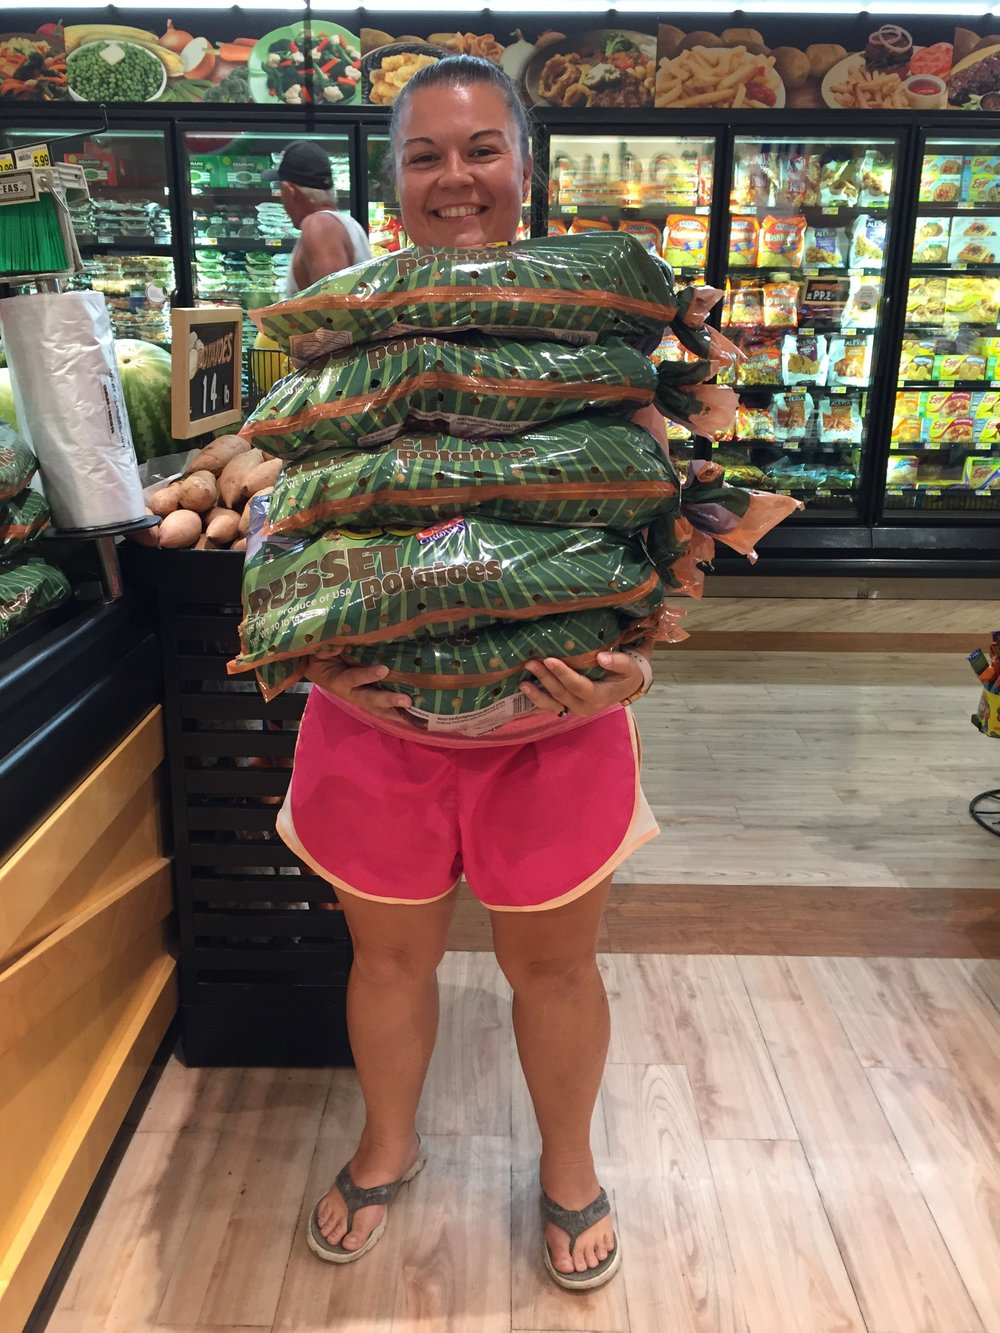 Celebrating the 50 pound mark! That's a lot of potatoes!